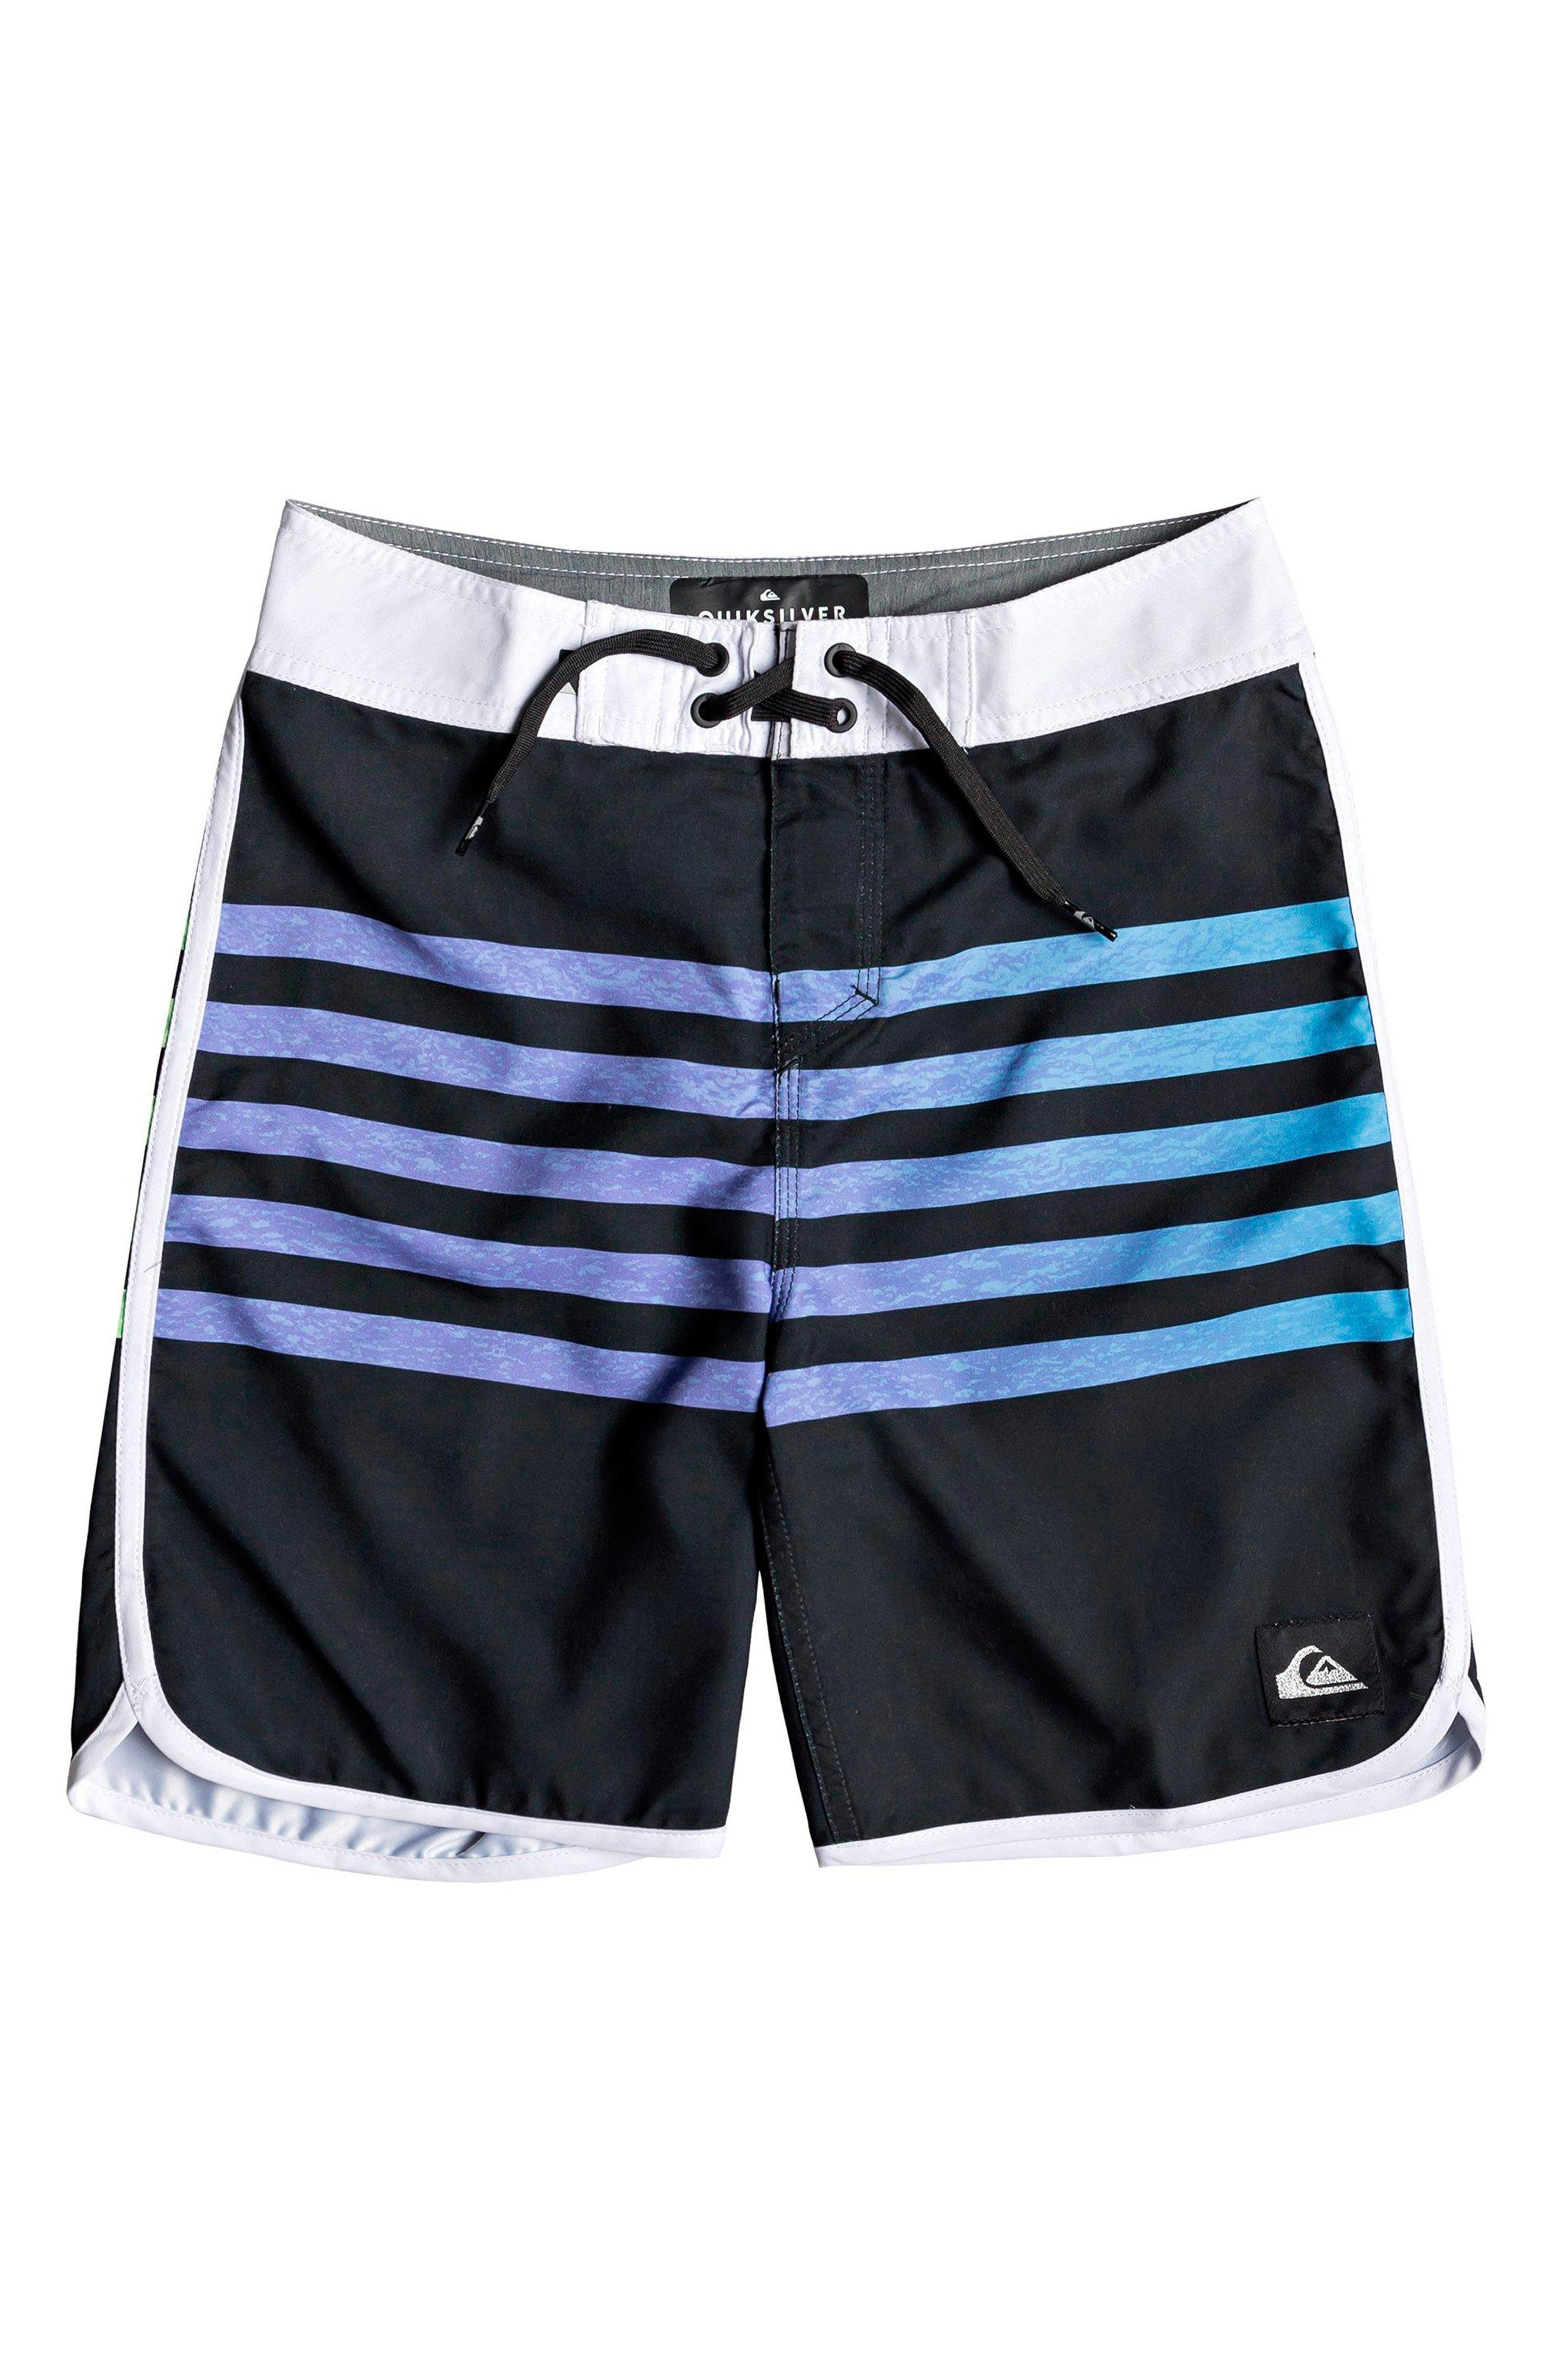 Boys Quiksilver Everyday Grass Roots Board Shorts Size 30  Black